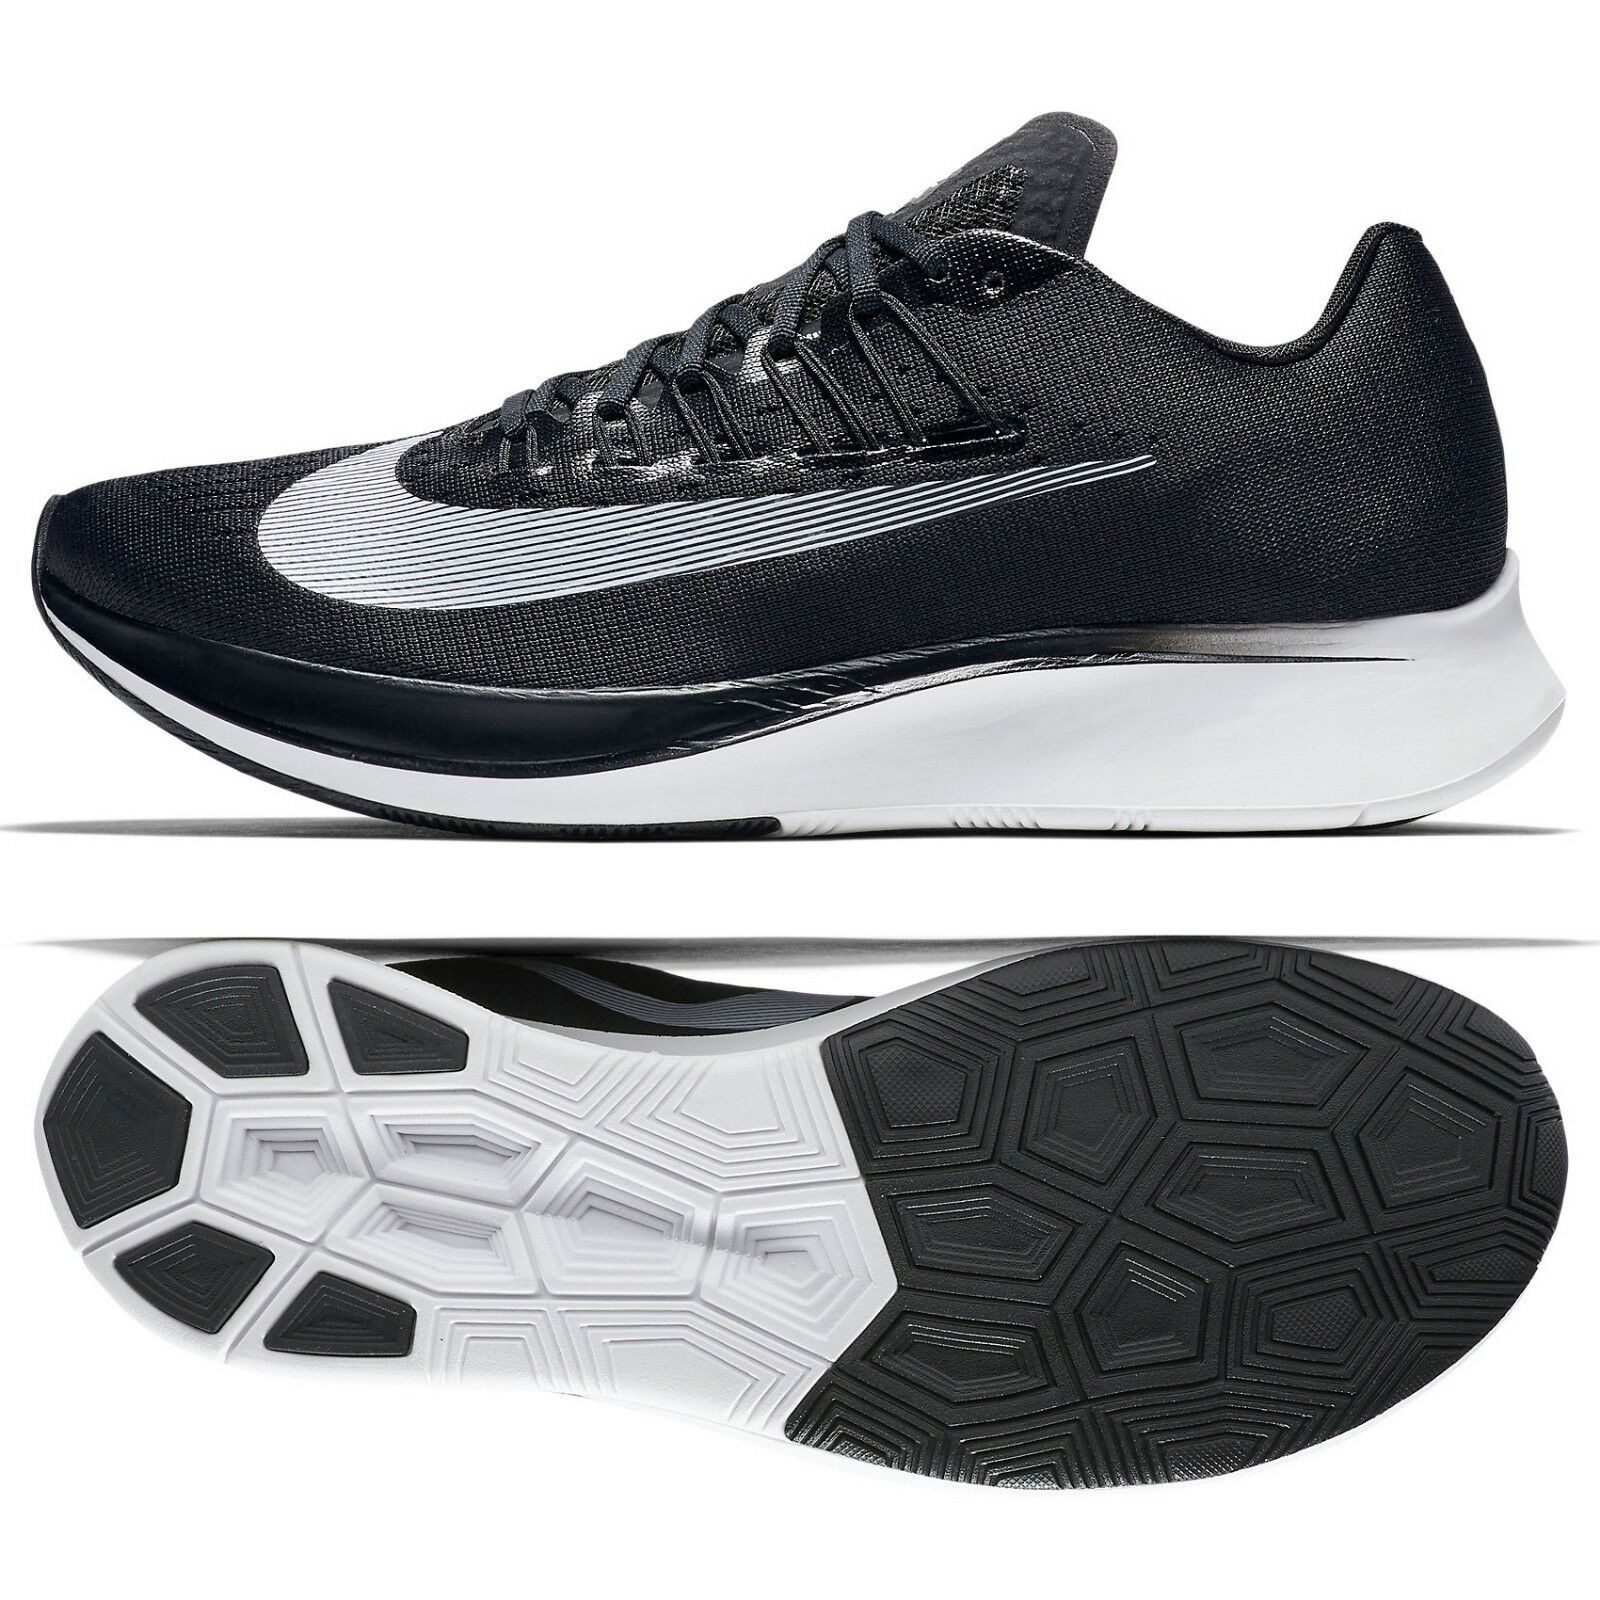 Nike Zoom Fly 880848-001 Black White Anthracite Carbon-Infused Men Running shoes